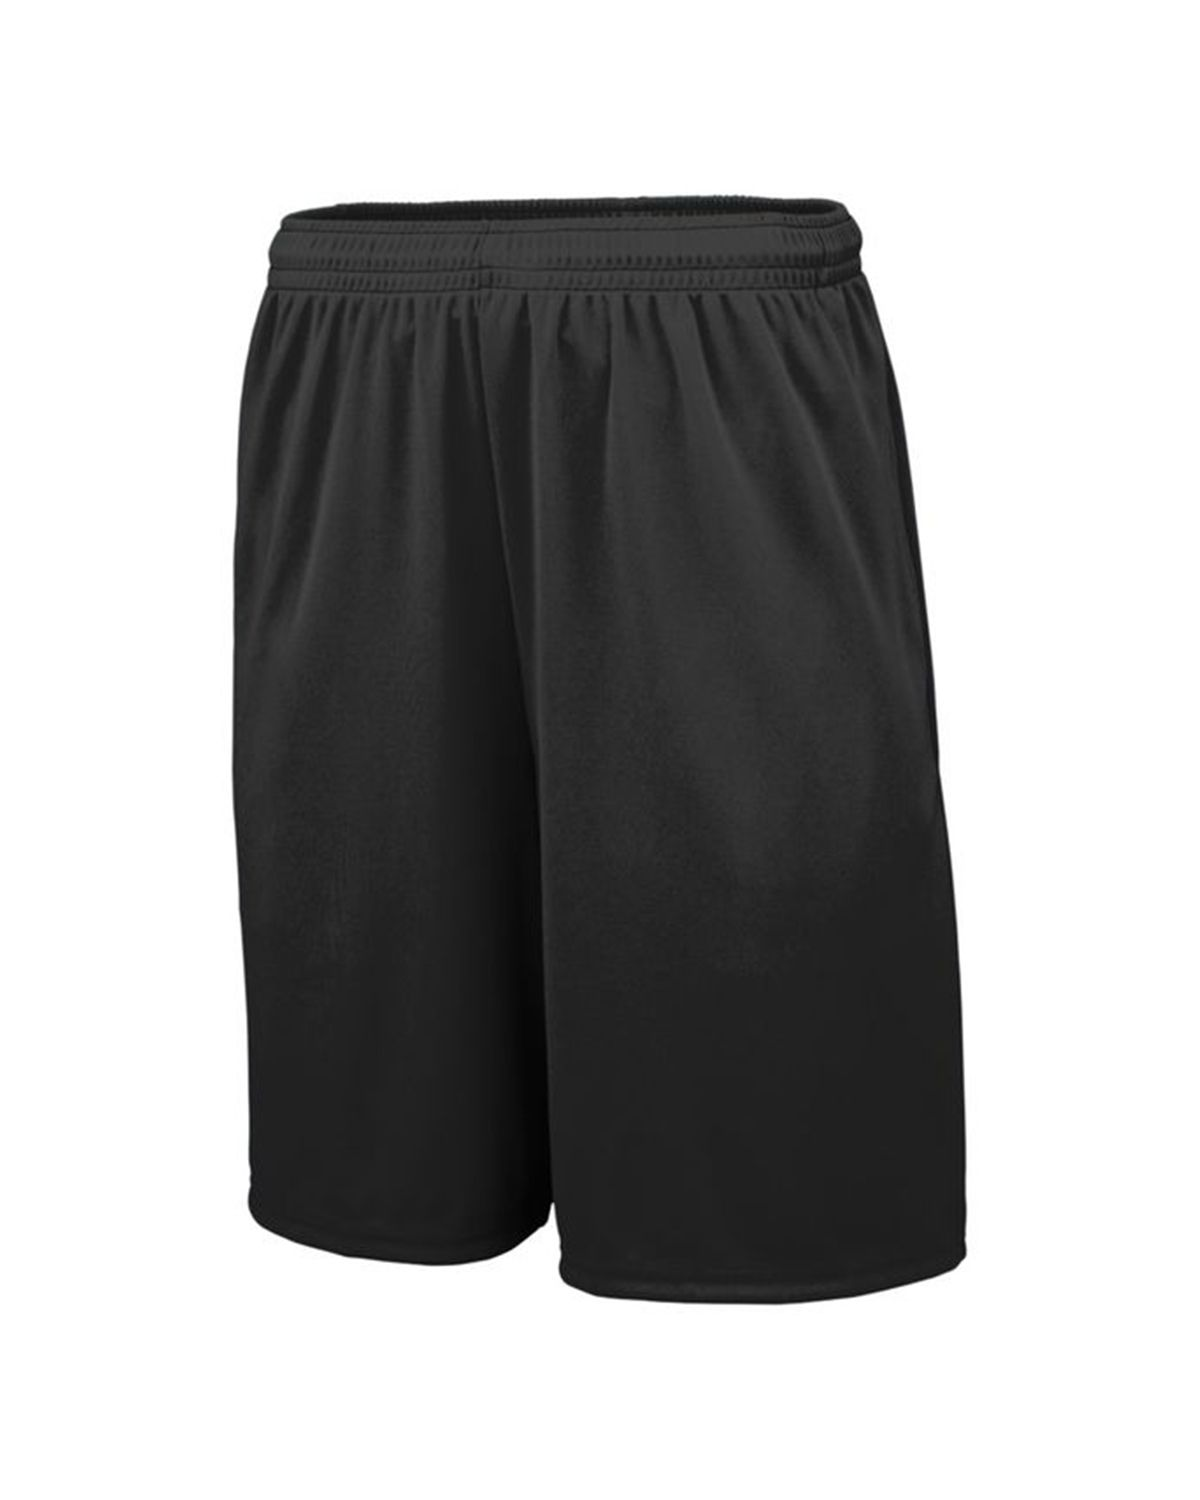 Augusta Sportswear 1428 Men's Training Short With Pockets